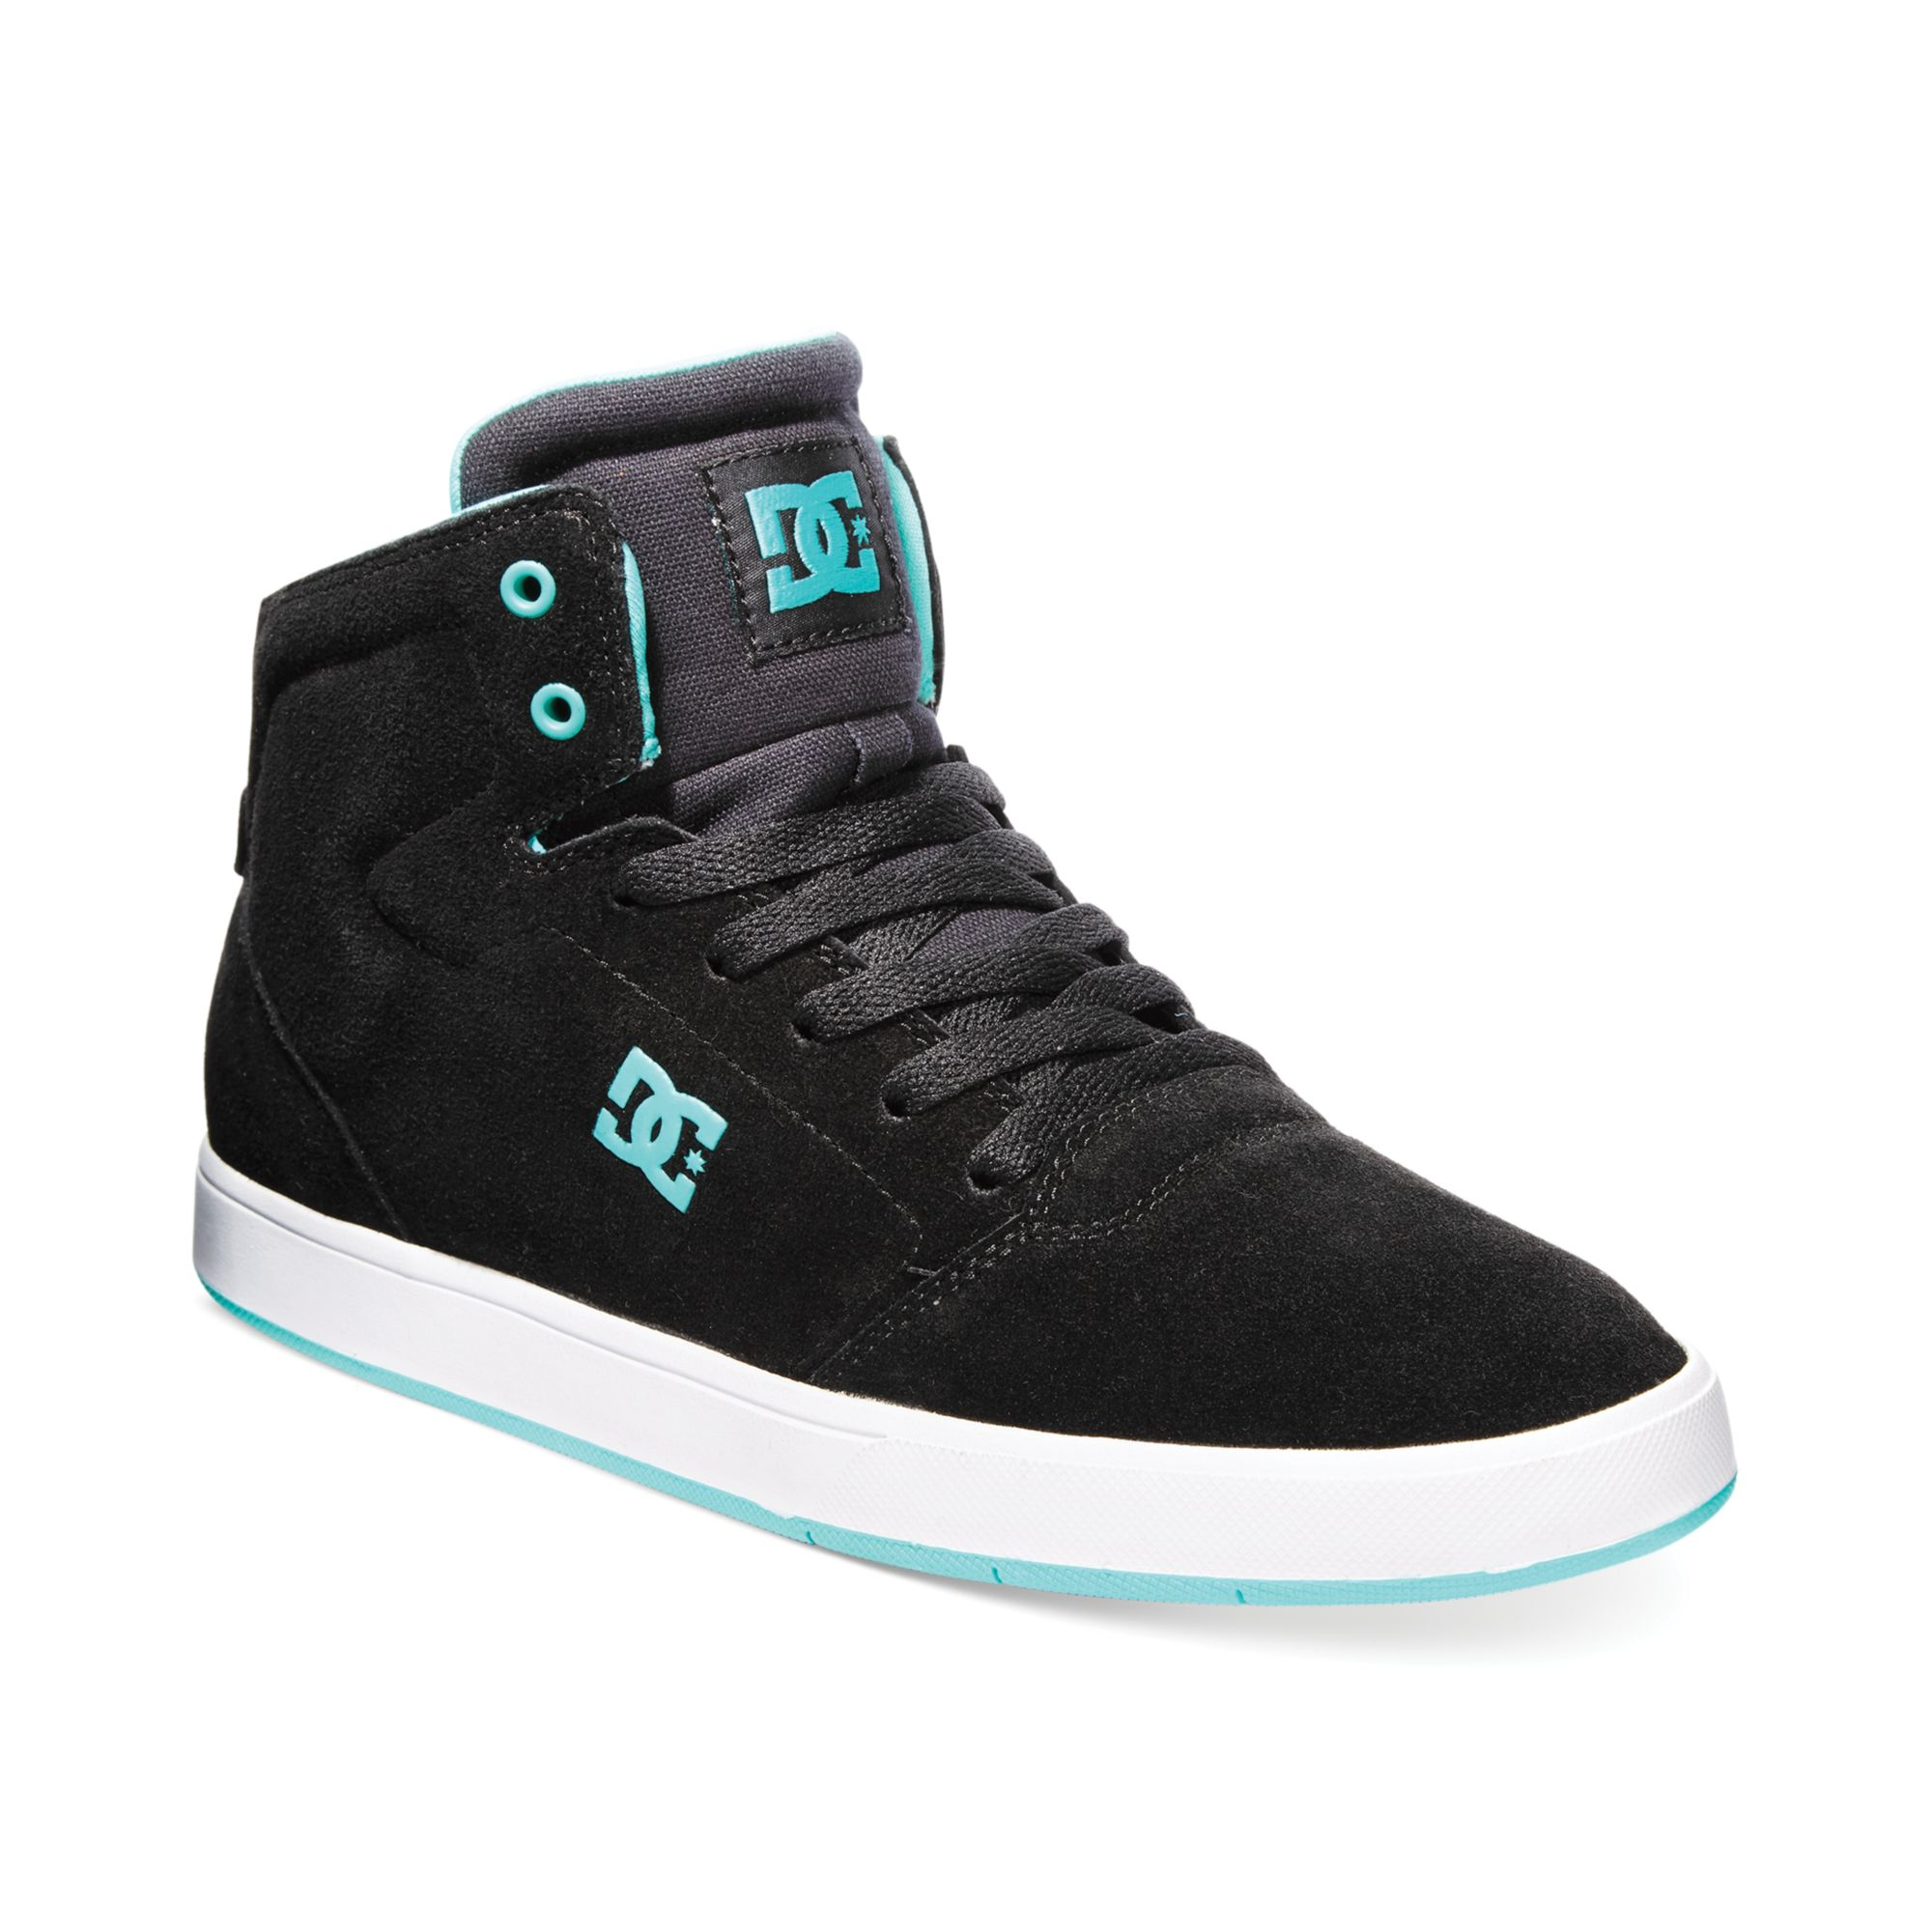 Dc Shoes Crisis High Sneakers In Black For Men Lyst